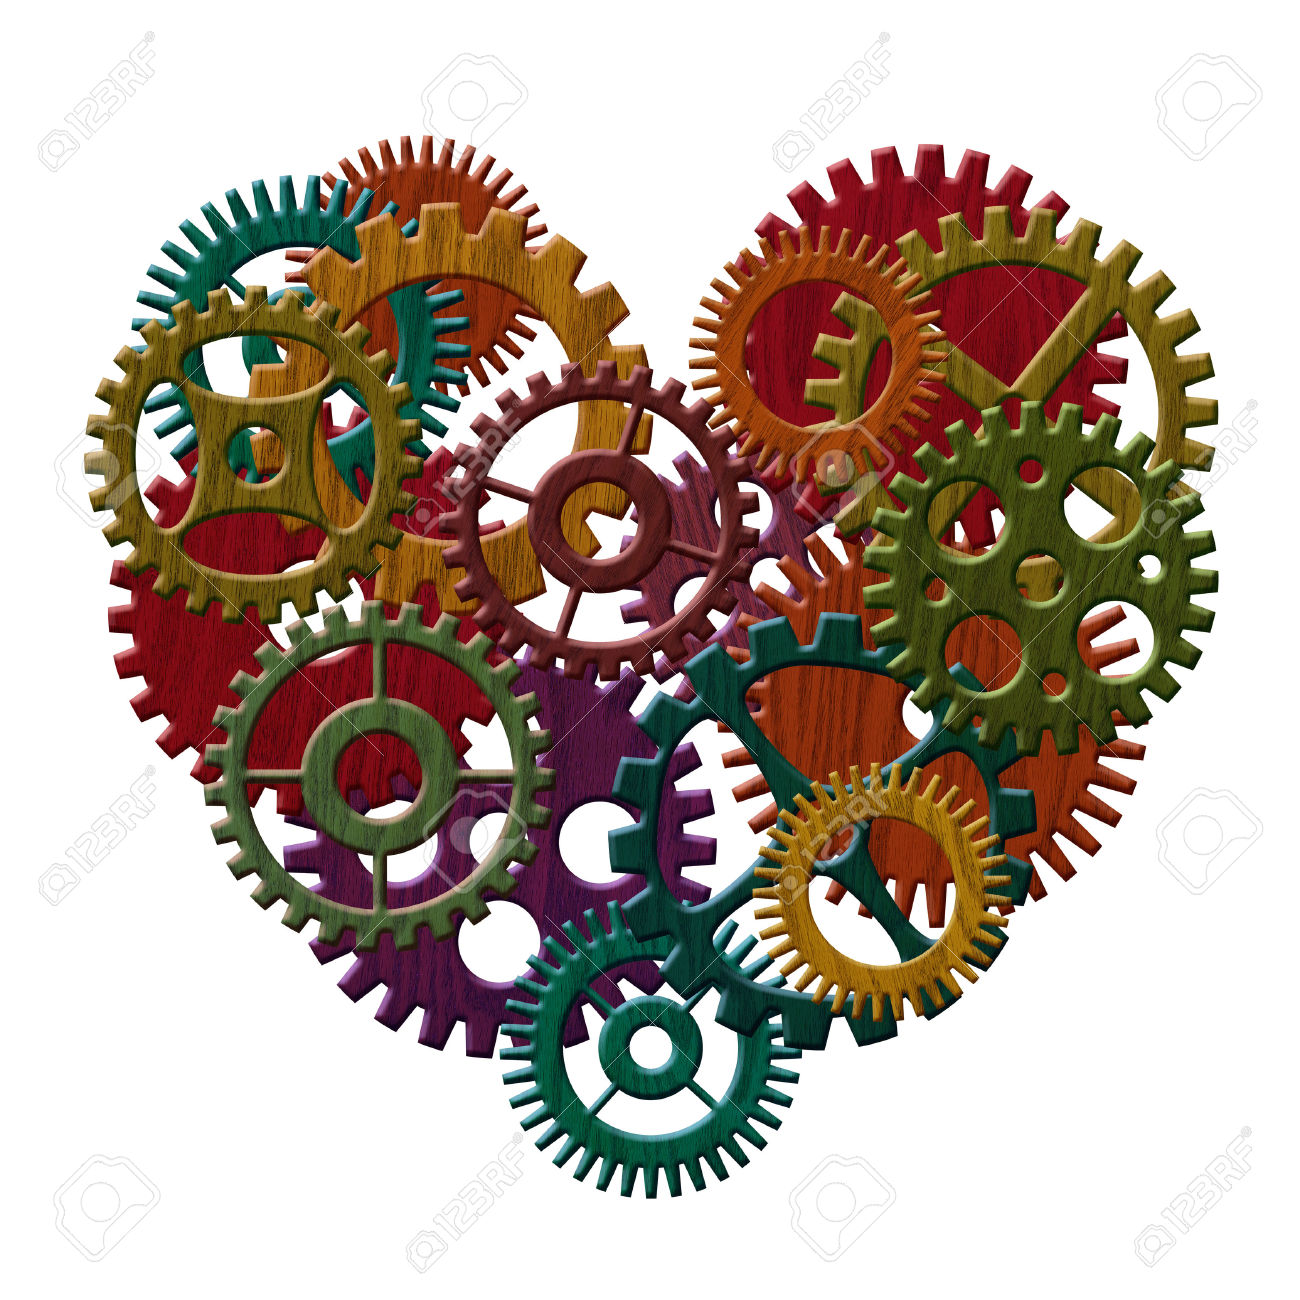 Color Stained Wooden Gears Forming Heart Shape Isolated On White.